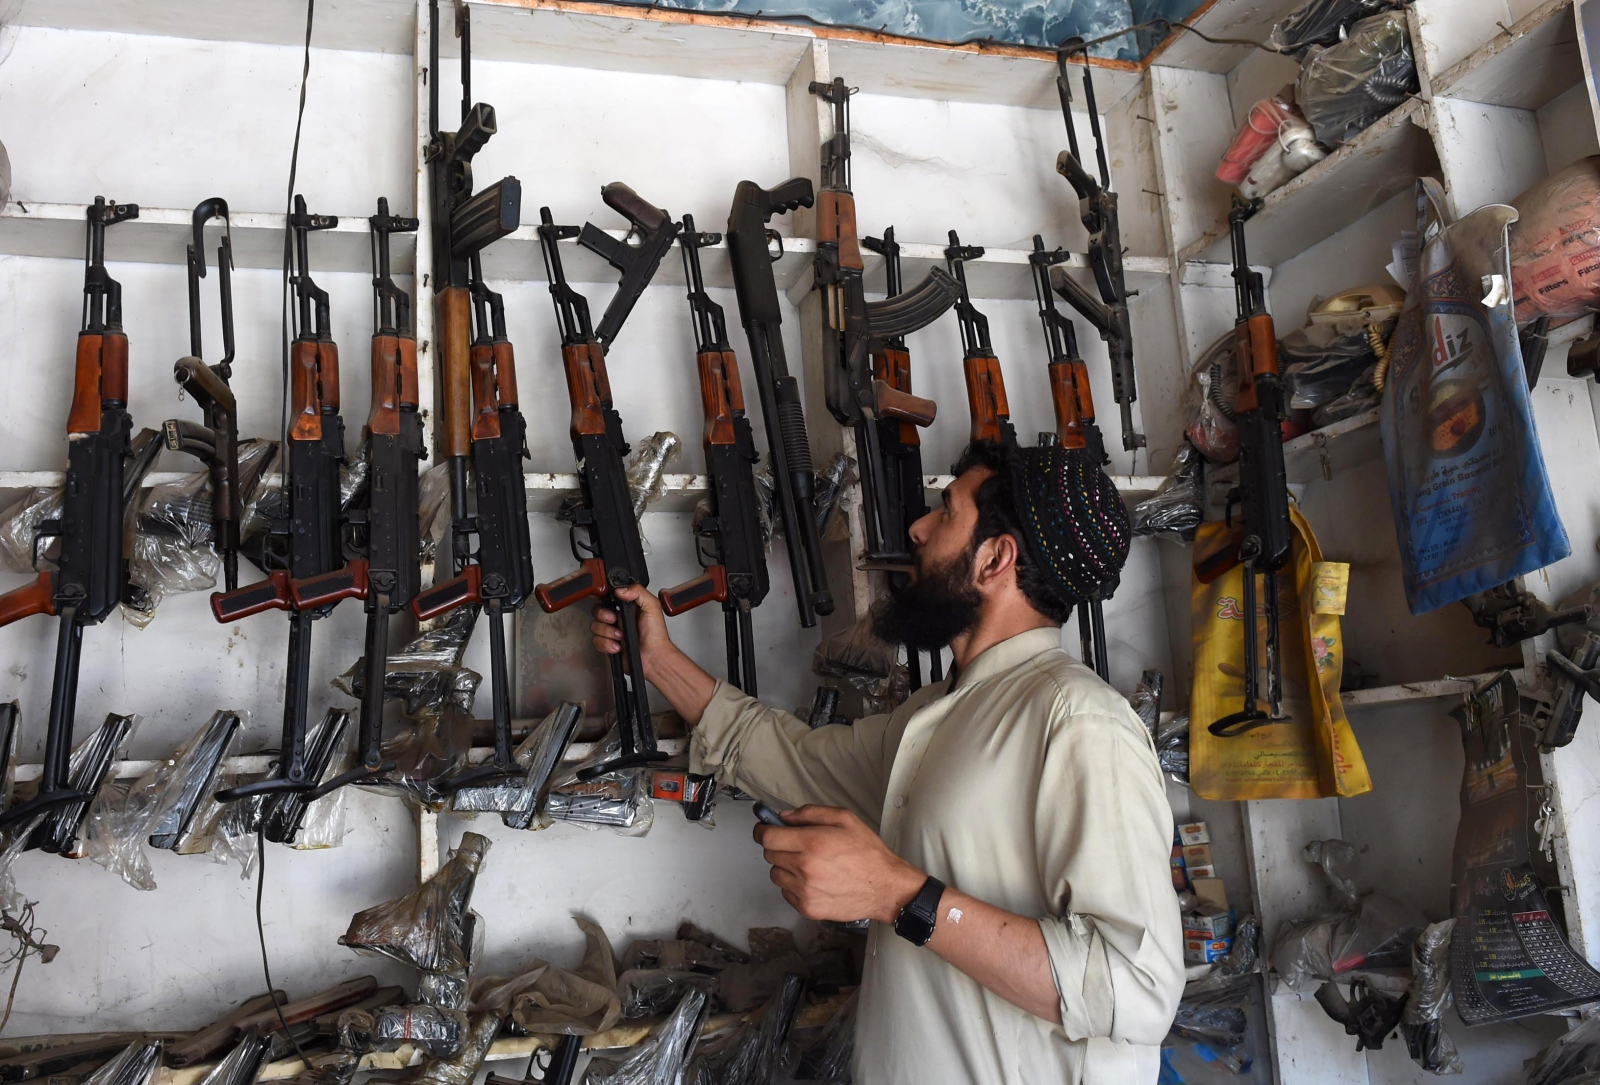 Pakistan In Arms Bazaar Near Peshawar Kalashnikovs Are